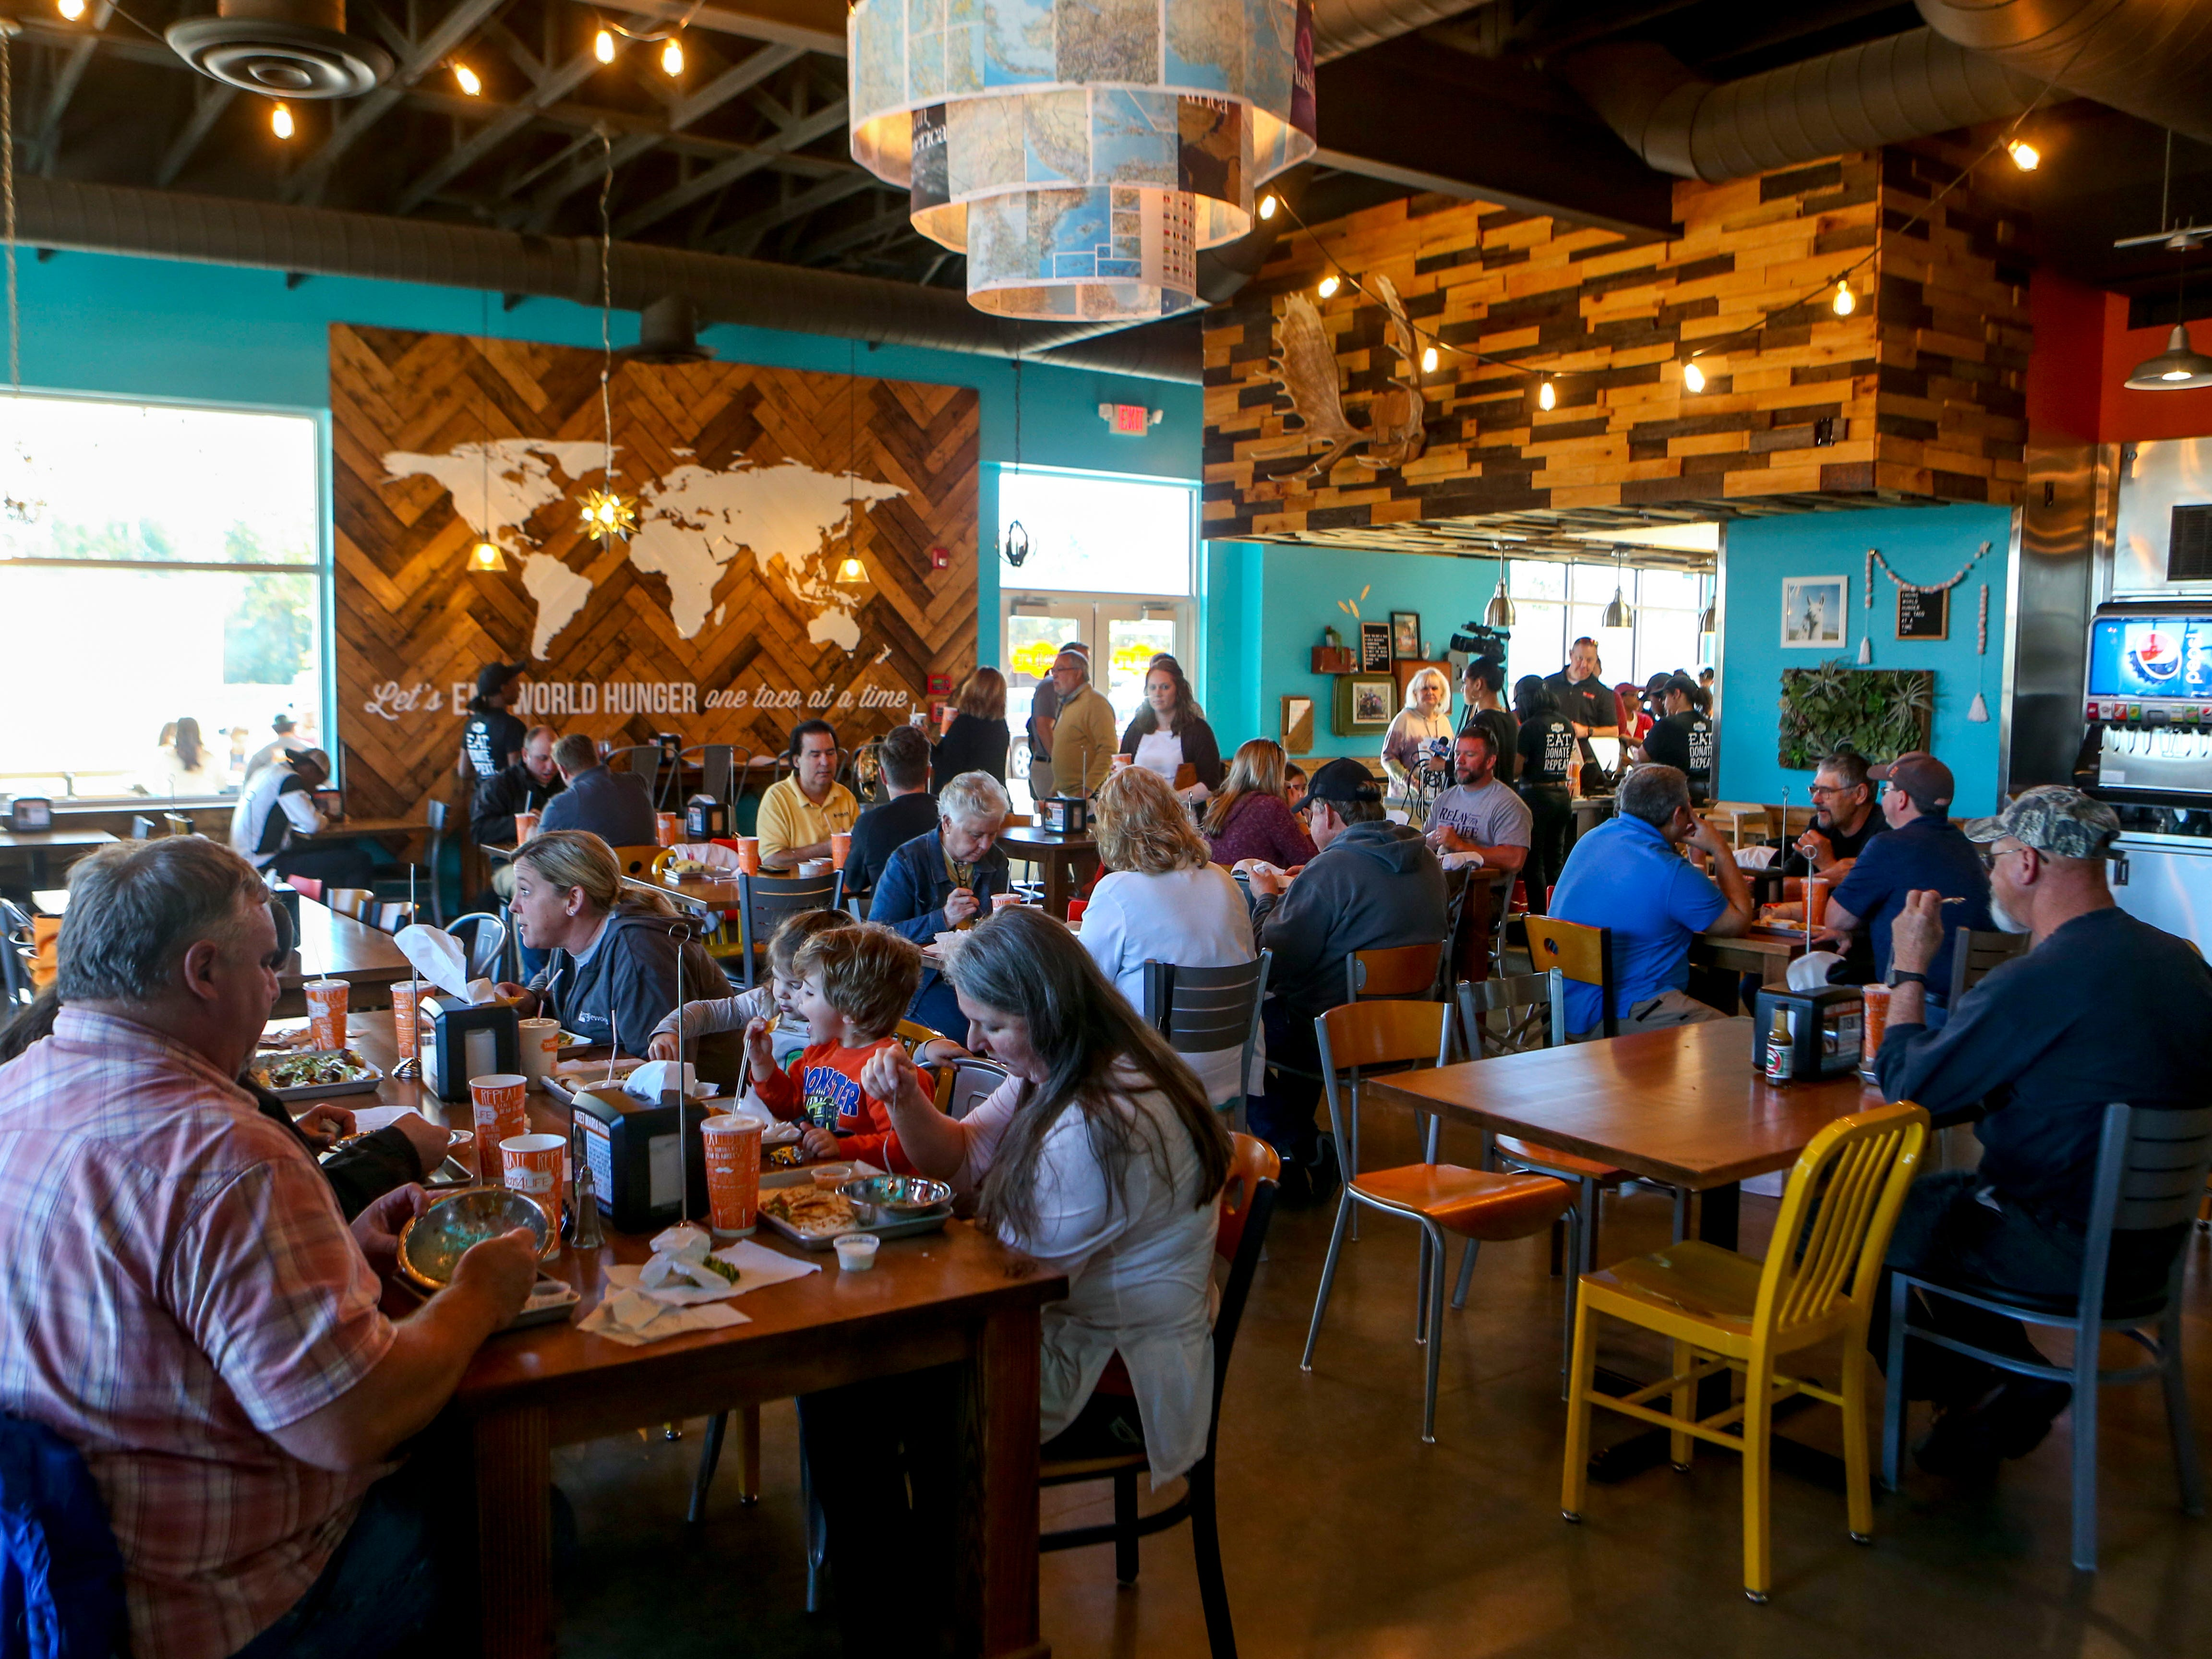 Patrons dine in the main room during the soft opening at Tacos 4 Life, a new restaurant in Jackson, Tenn., on Monday, Oct. 29, 2018.